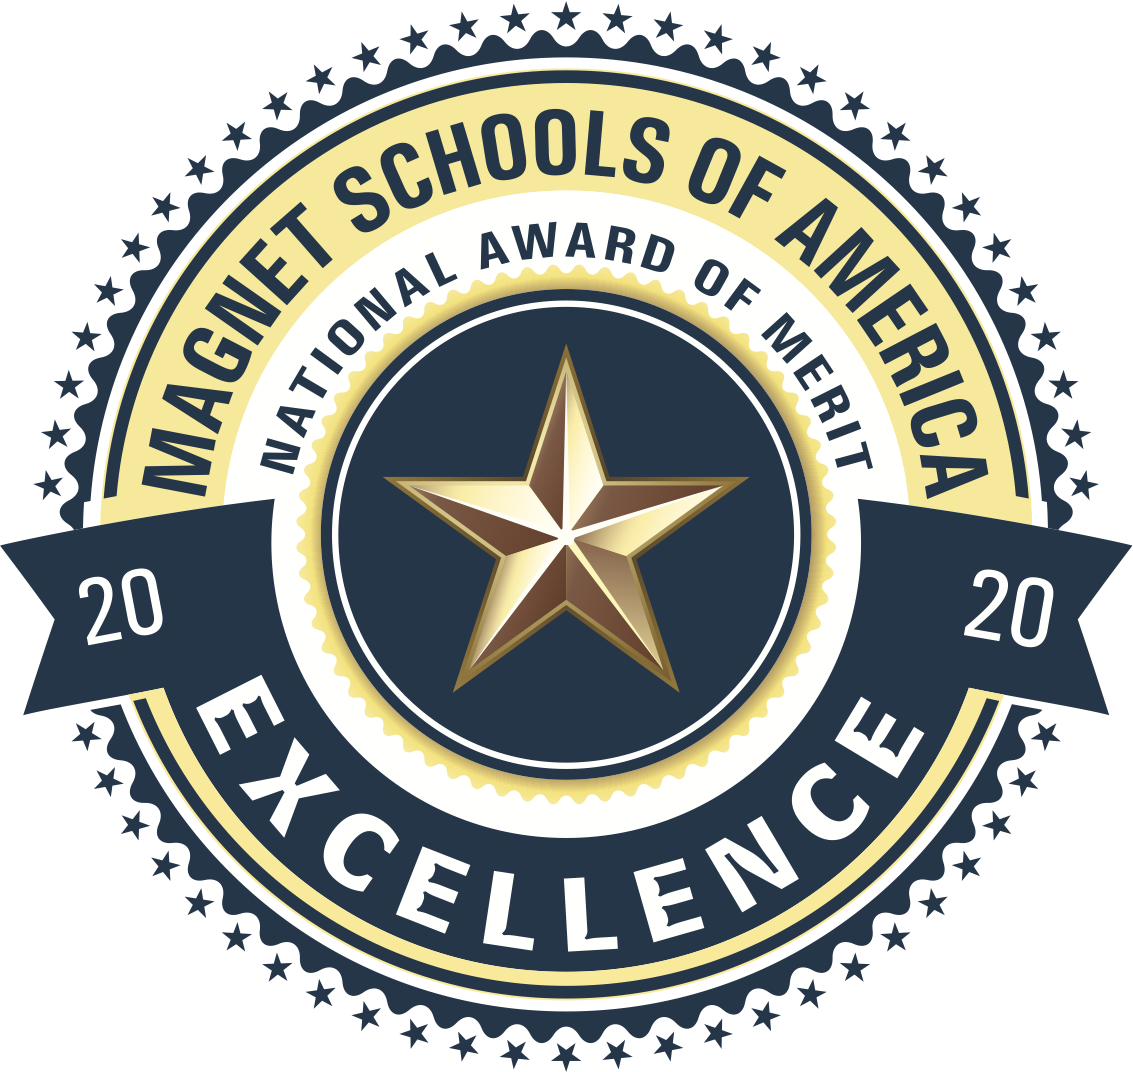 Magnet Schools of America - Excellence